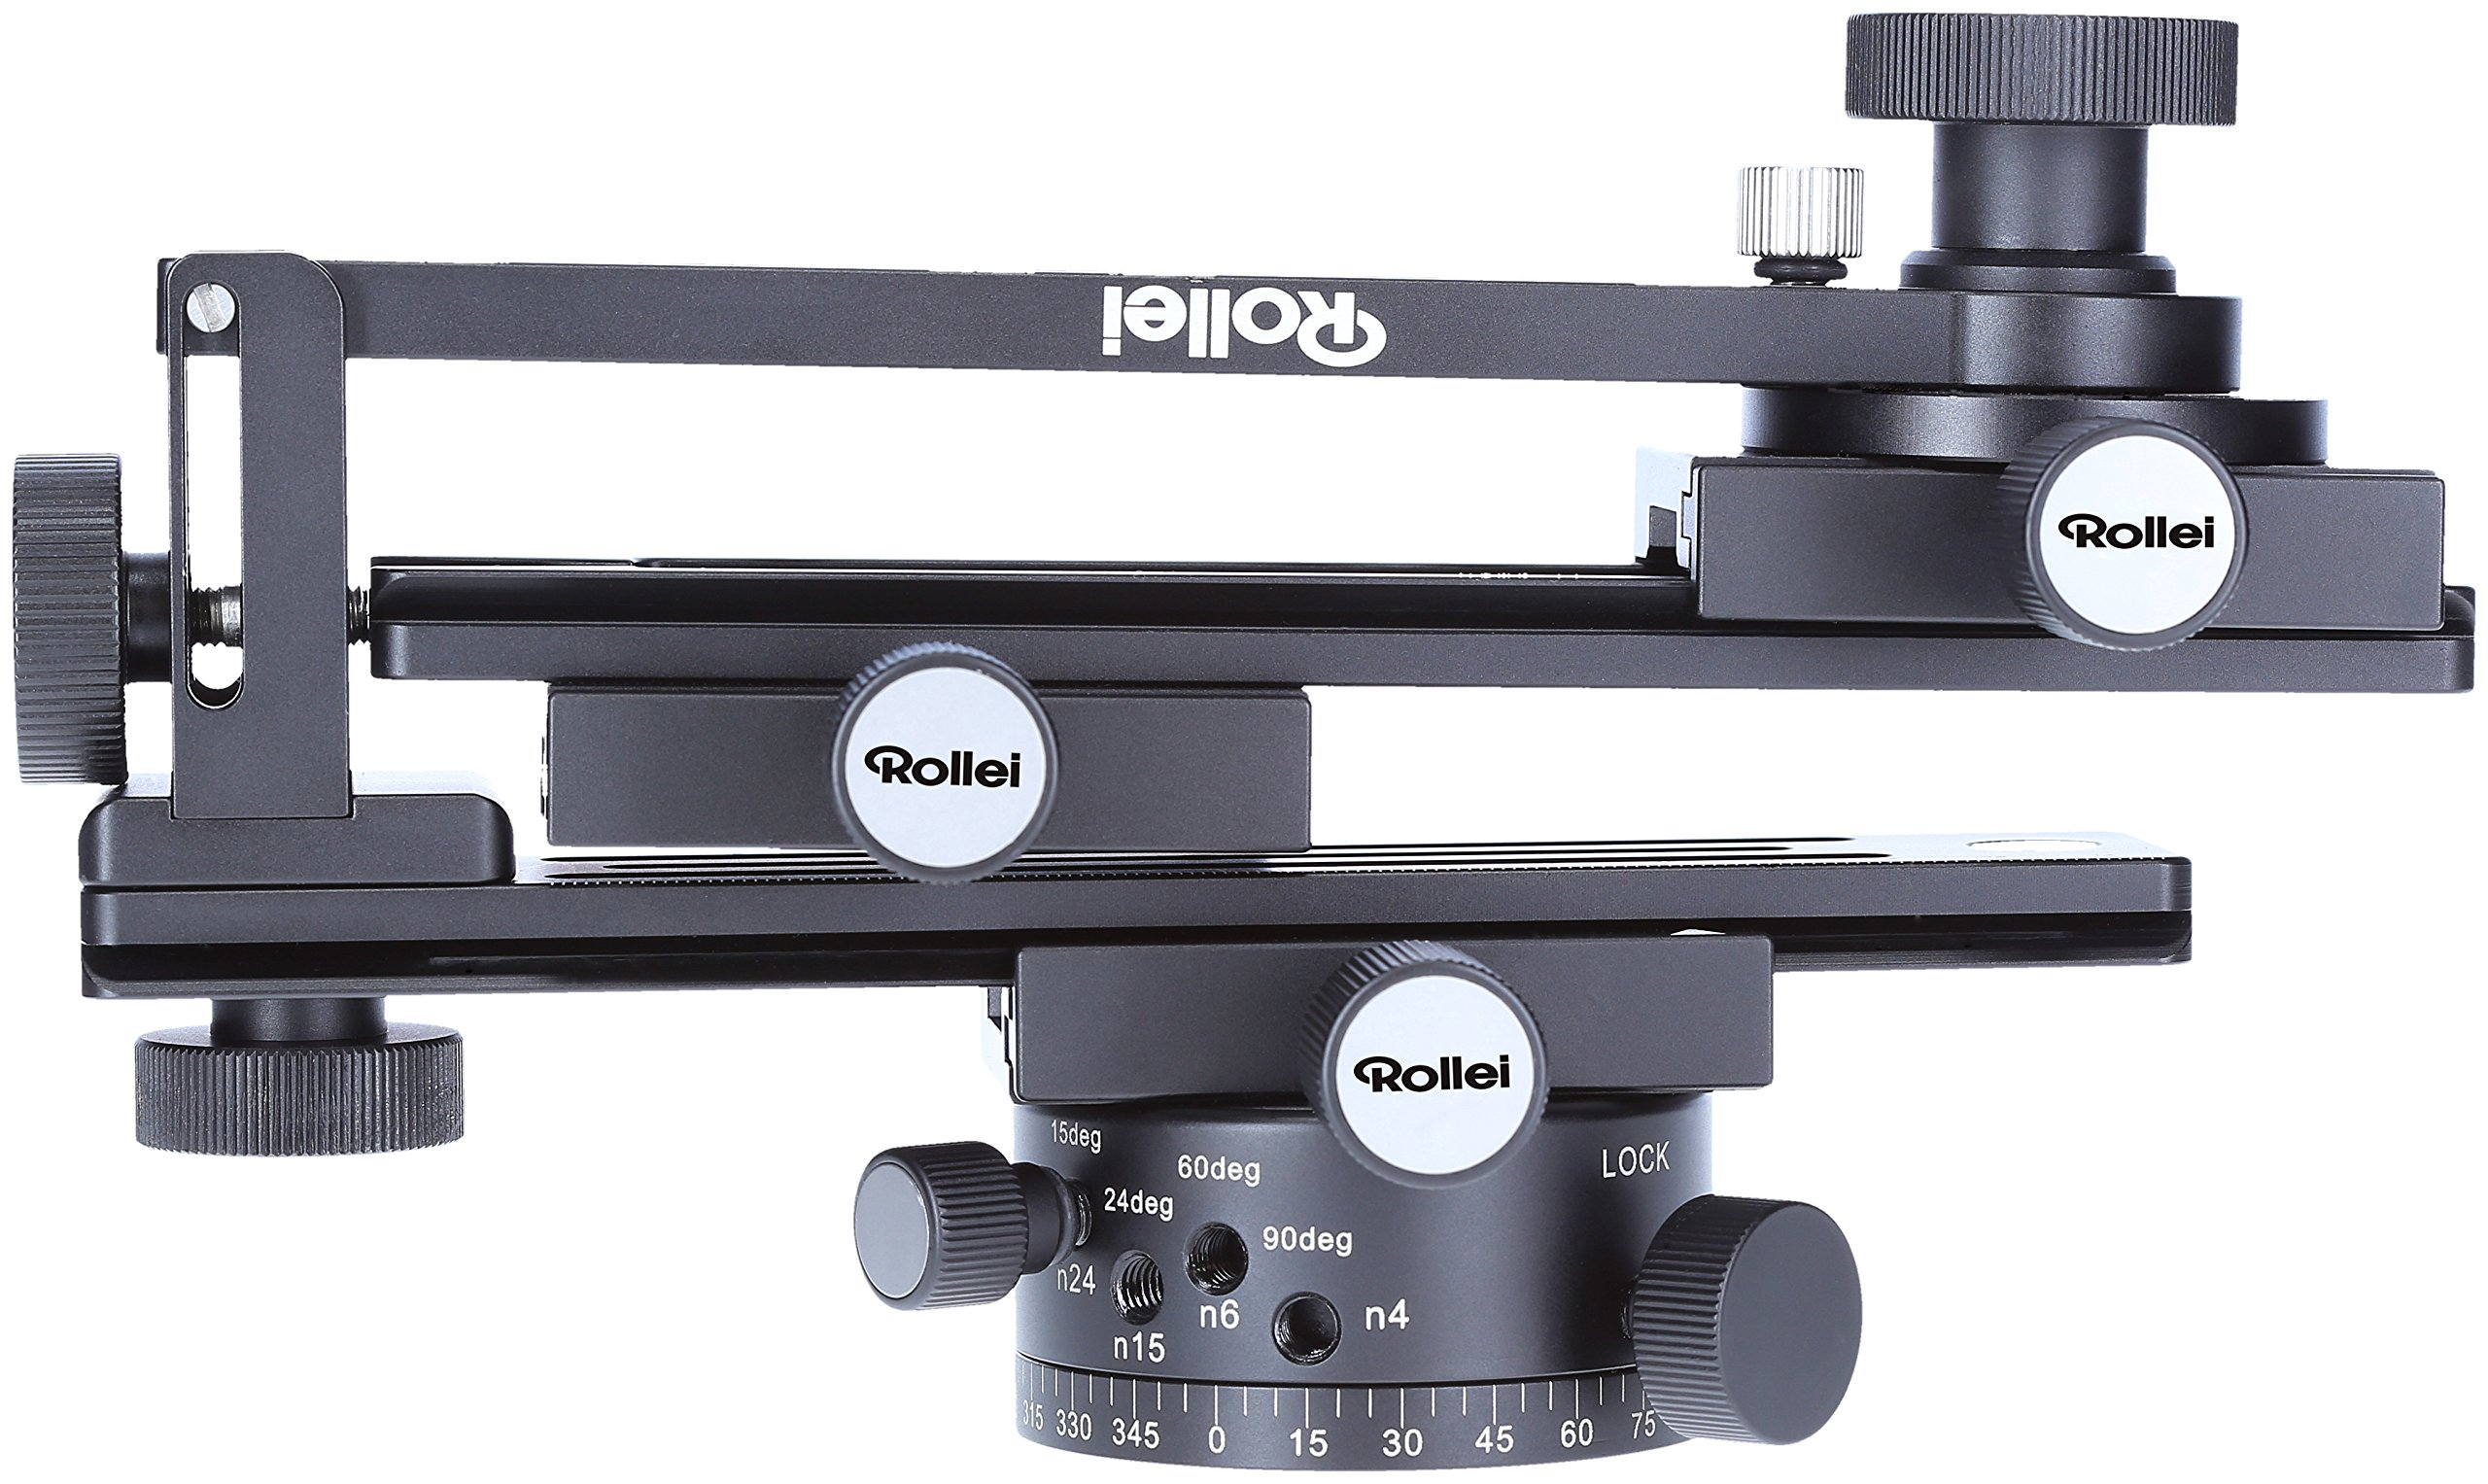 Rollei Panoramic Head 200 Mark II - Tripod Head for Multi Row Panoramic Photos, Max. Load of 3 kg and ARCA Swiss Compatible - Black